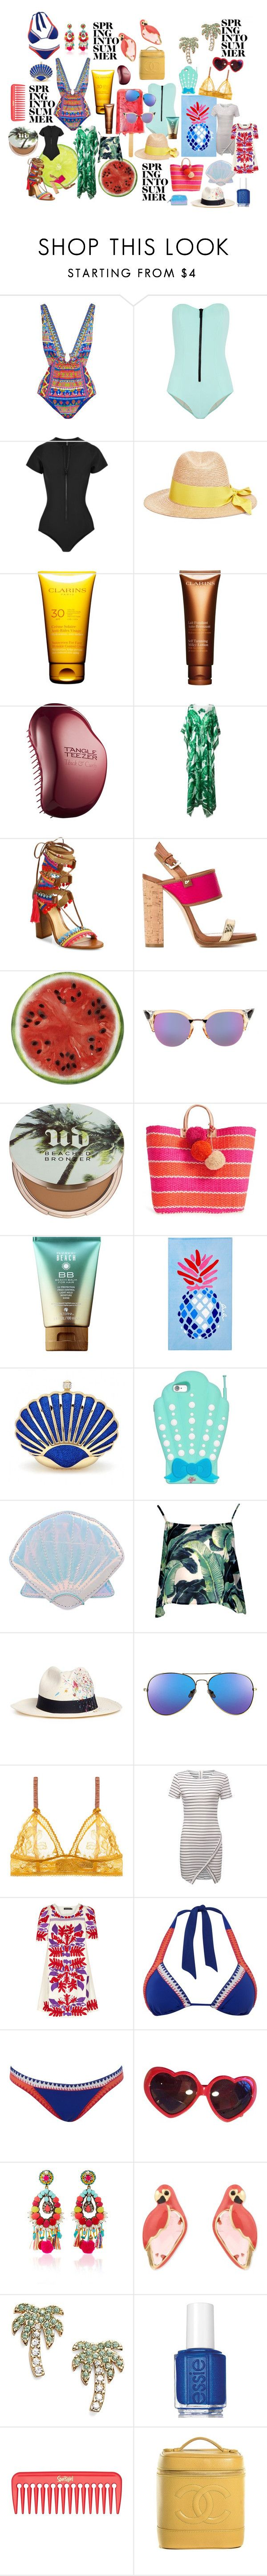 """Just Cant Get Enough"" by sveaw on Polyvore featuring Camilla, Lisa Marie Fernandez, Federica Moretti, Clarins, Tangle Teezer, Dolce&Gabbana, Schutz, Dsquared2, Round Towel Co. and Fendi"